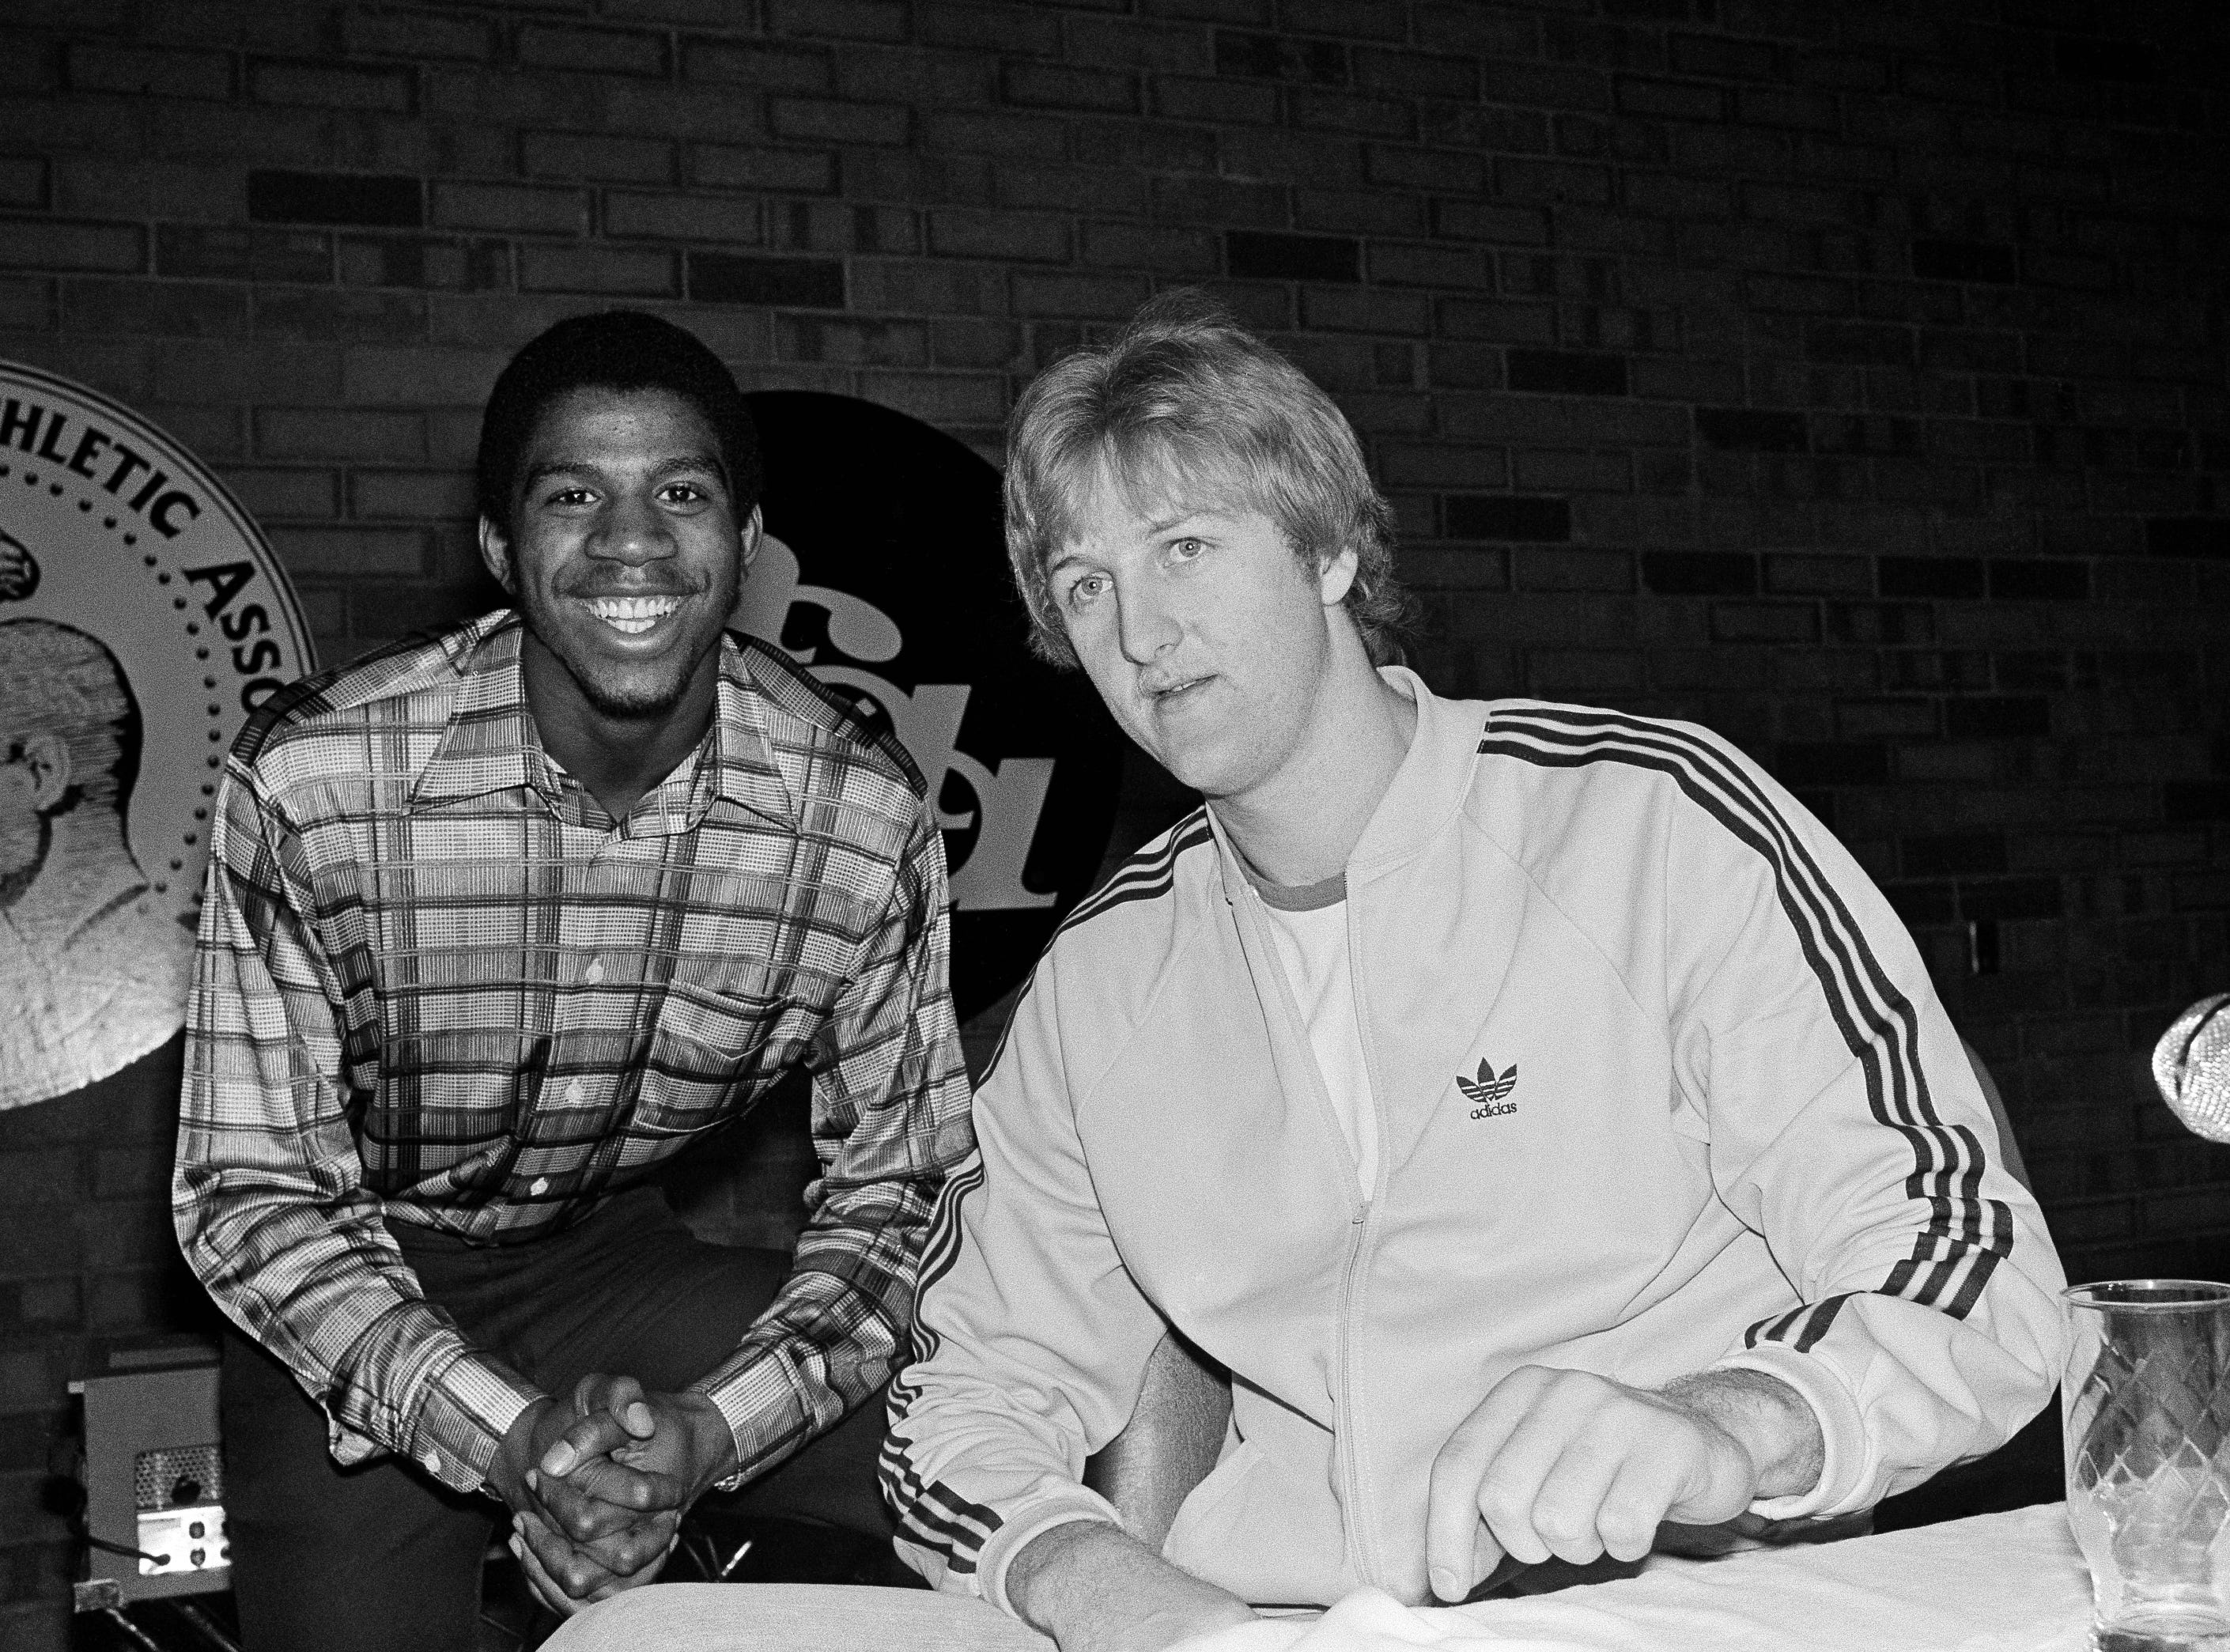 In this March 25, 1979 file photo, Magic Johnson, left, of Michigan State, and Larry Bird of Indiana State are shown during a news conference for the NCAA college basketball championships, in Salt Lake City. Showtime is about to have a whole new meaning for Magic Johnson. The story of his rivalry and friendship with Larry Bird has been made into a play, opening in New York in April.